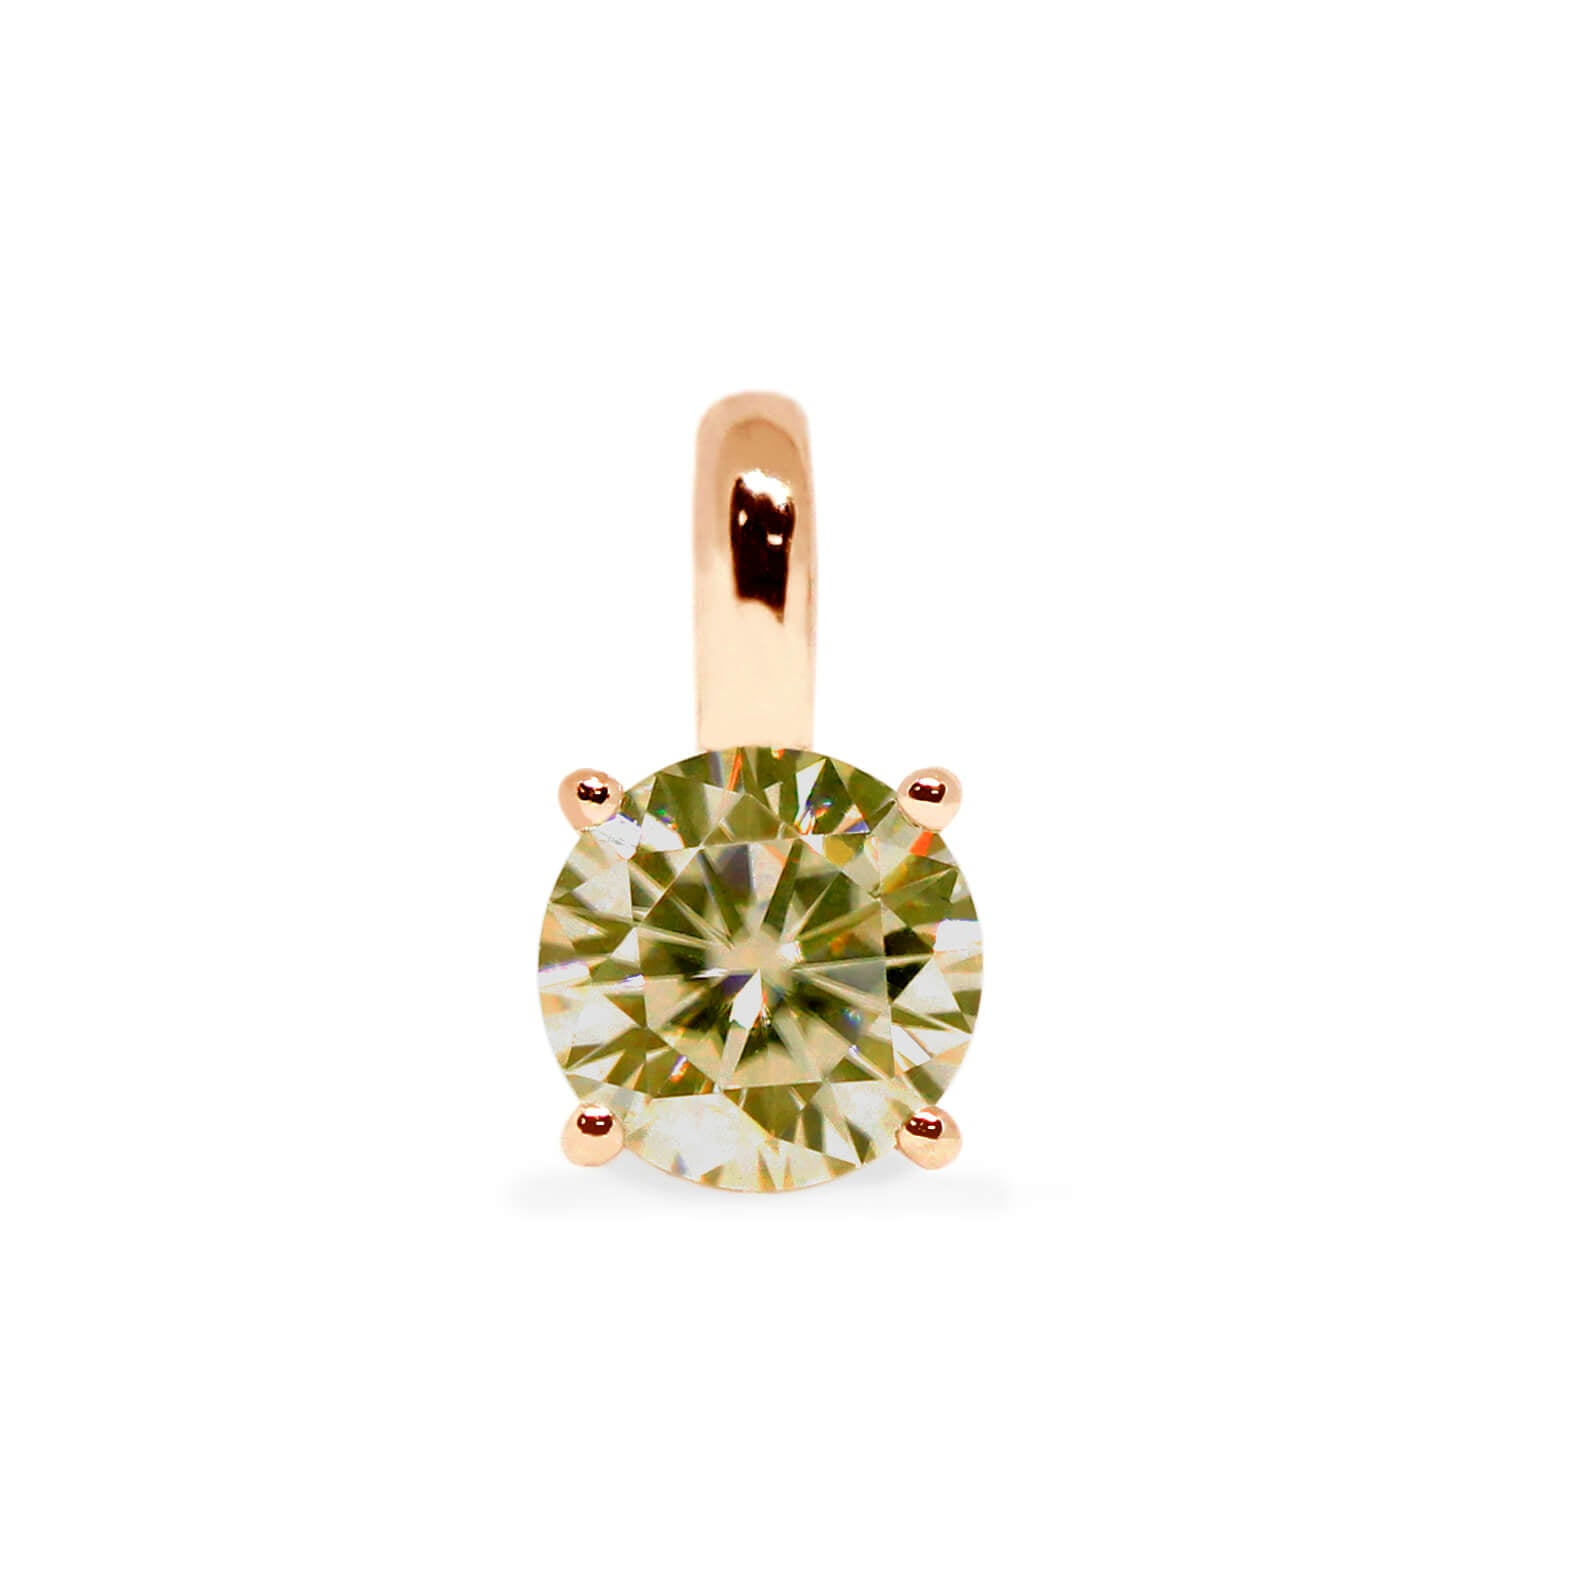 Fancy Intense Yellow Moissanite Round Solitaire 18K Gold Pendant - Lecaine Gems Moissanite